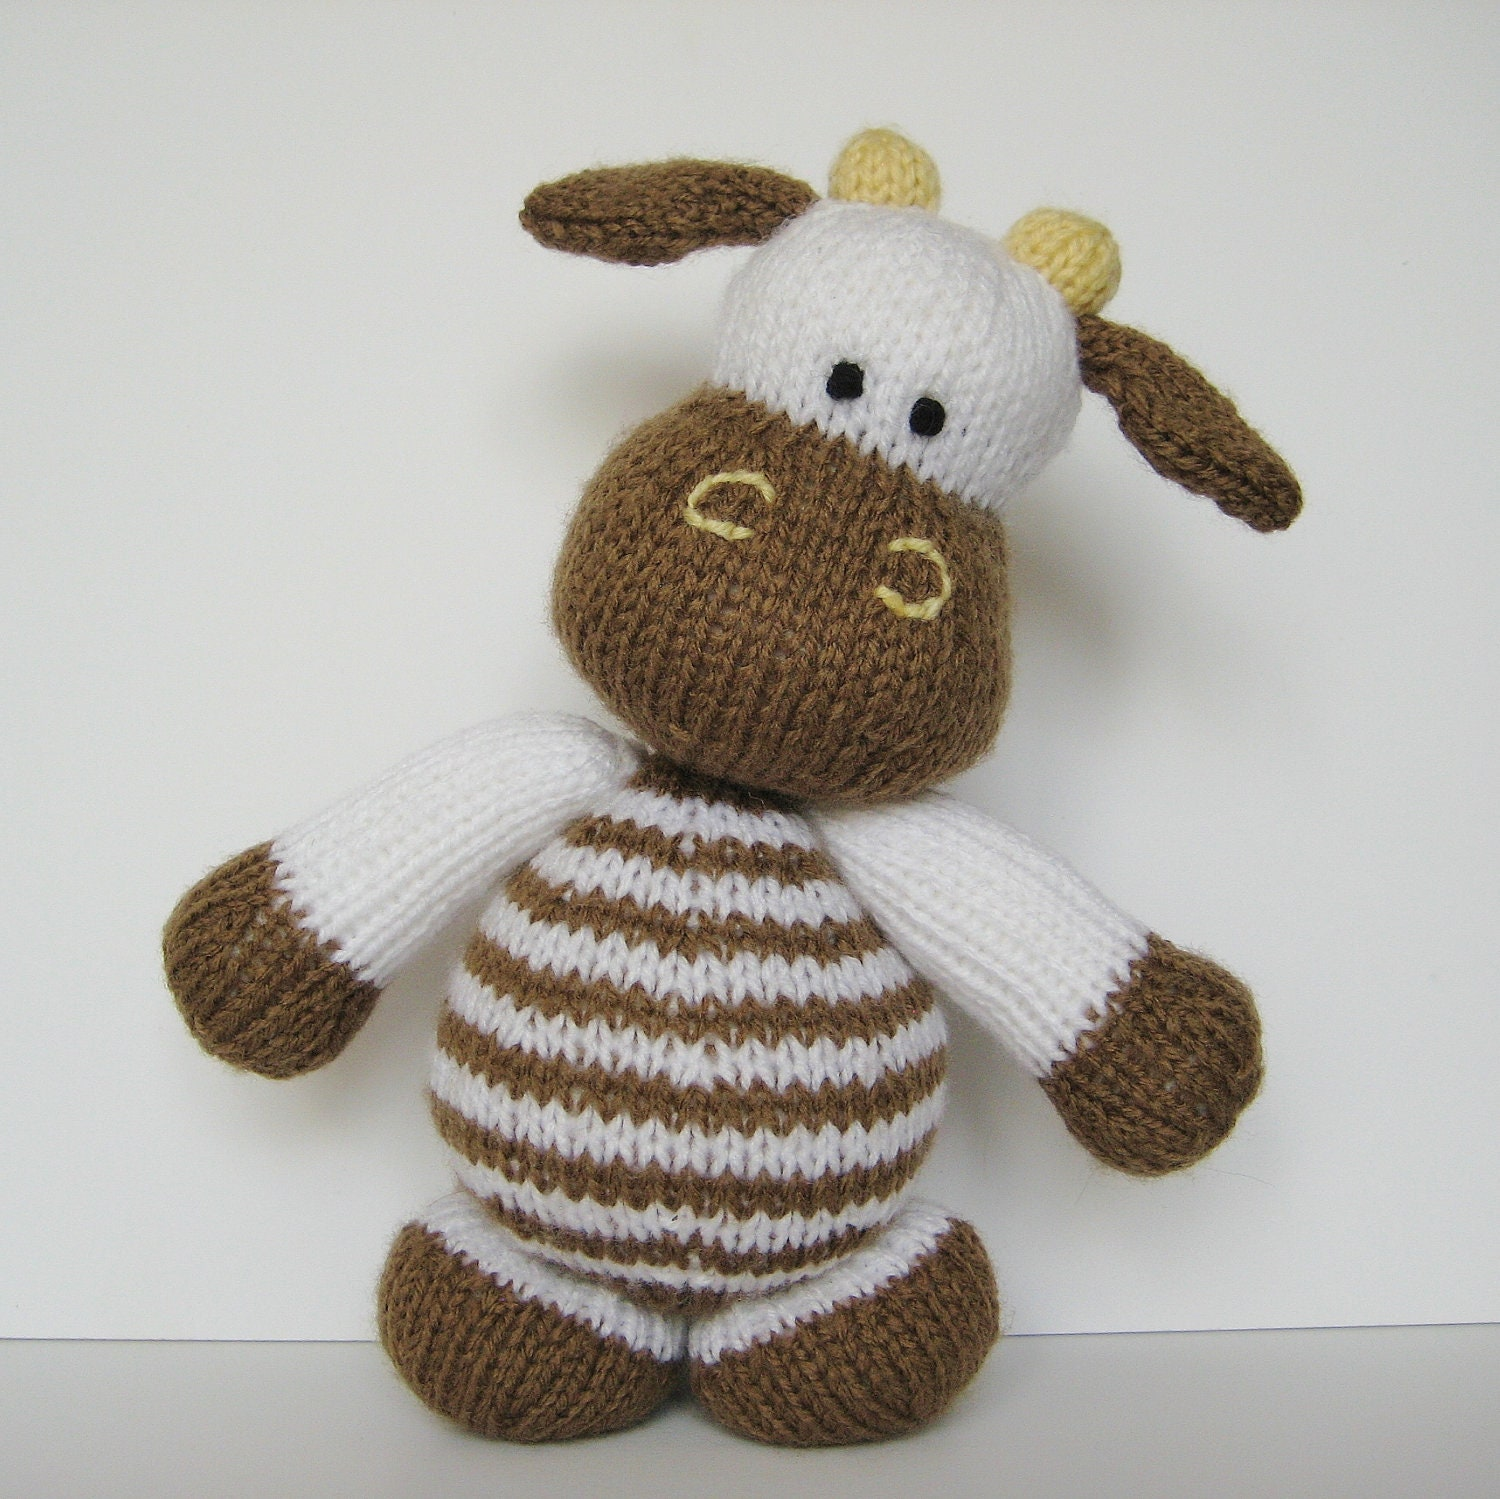 Milkshake the Cow toy knitting pattern by fluffandfuzz on Etsy